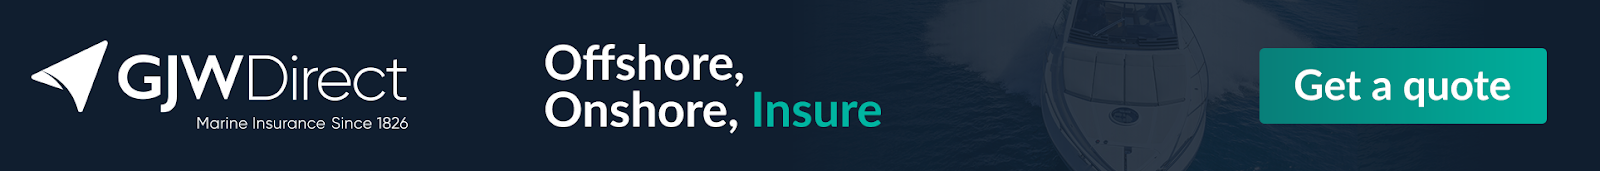 Get a quote for all inclusive Motor Cruiser insurance with GJW